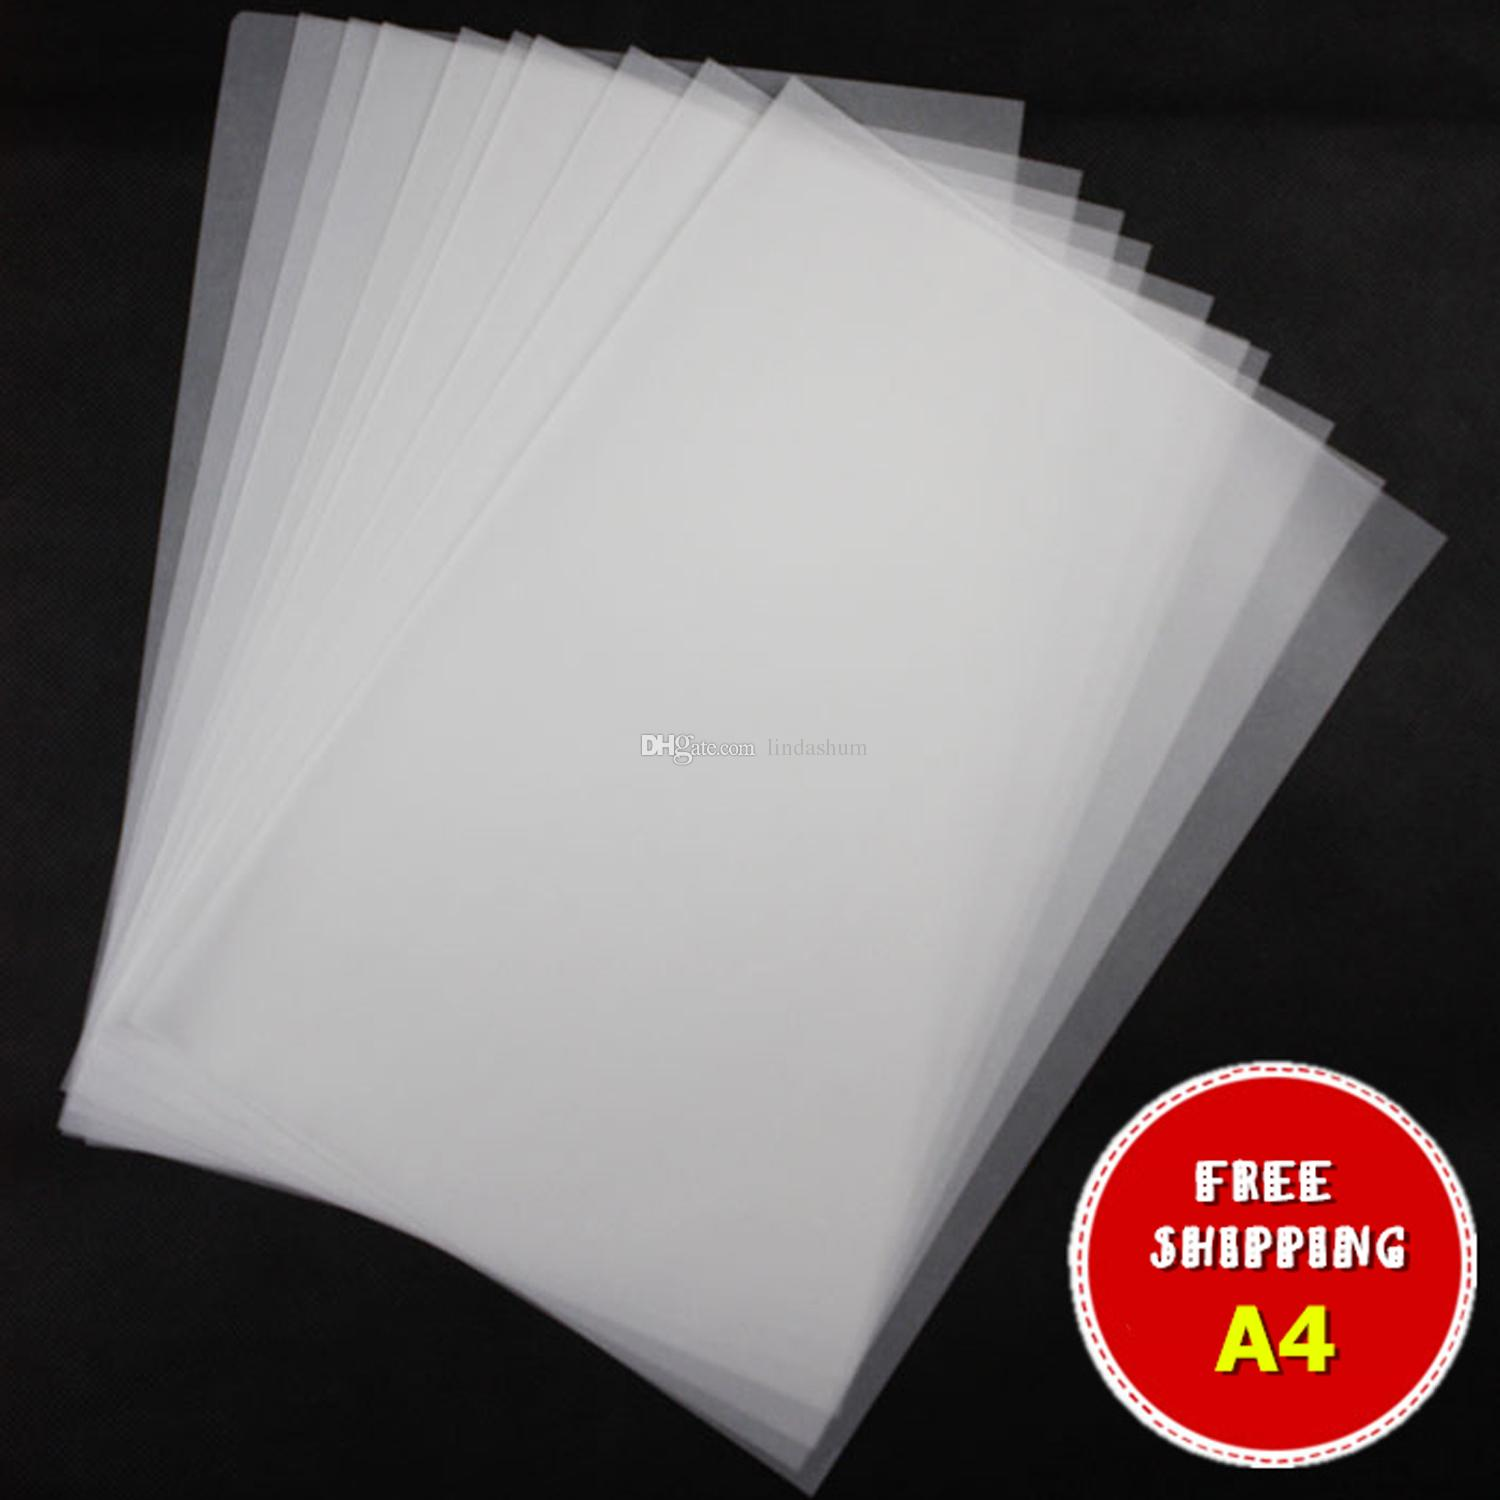 Printing photo enlargements at Costco Photo Center FAQ Print photos on transparent papers